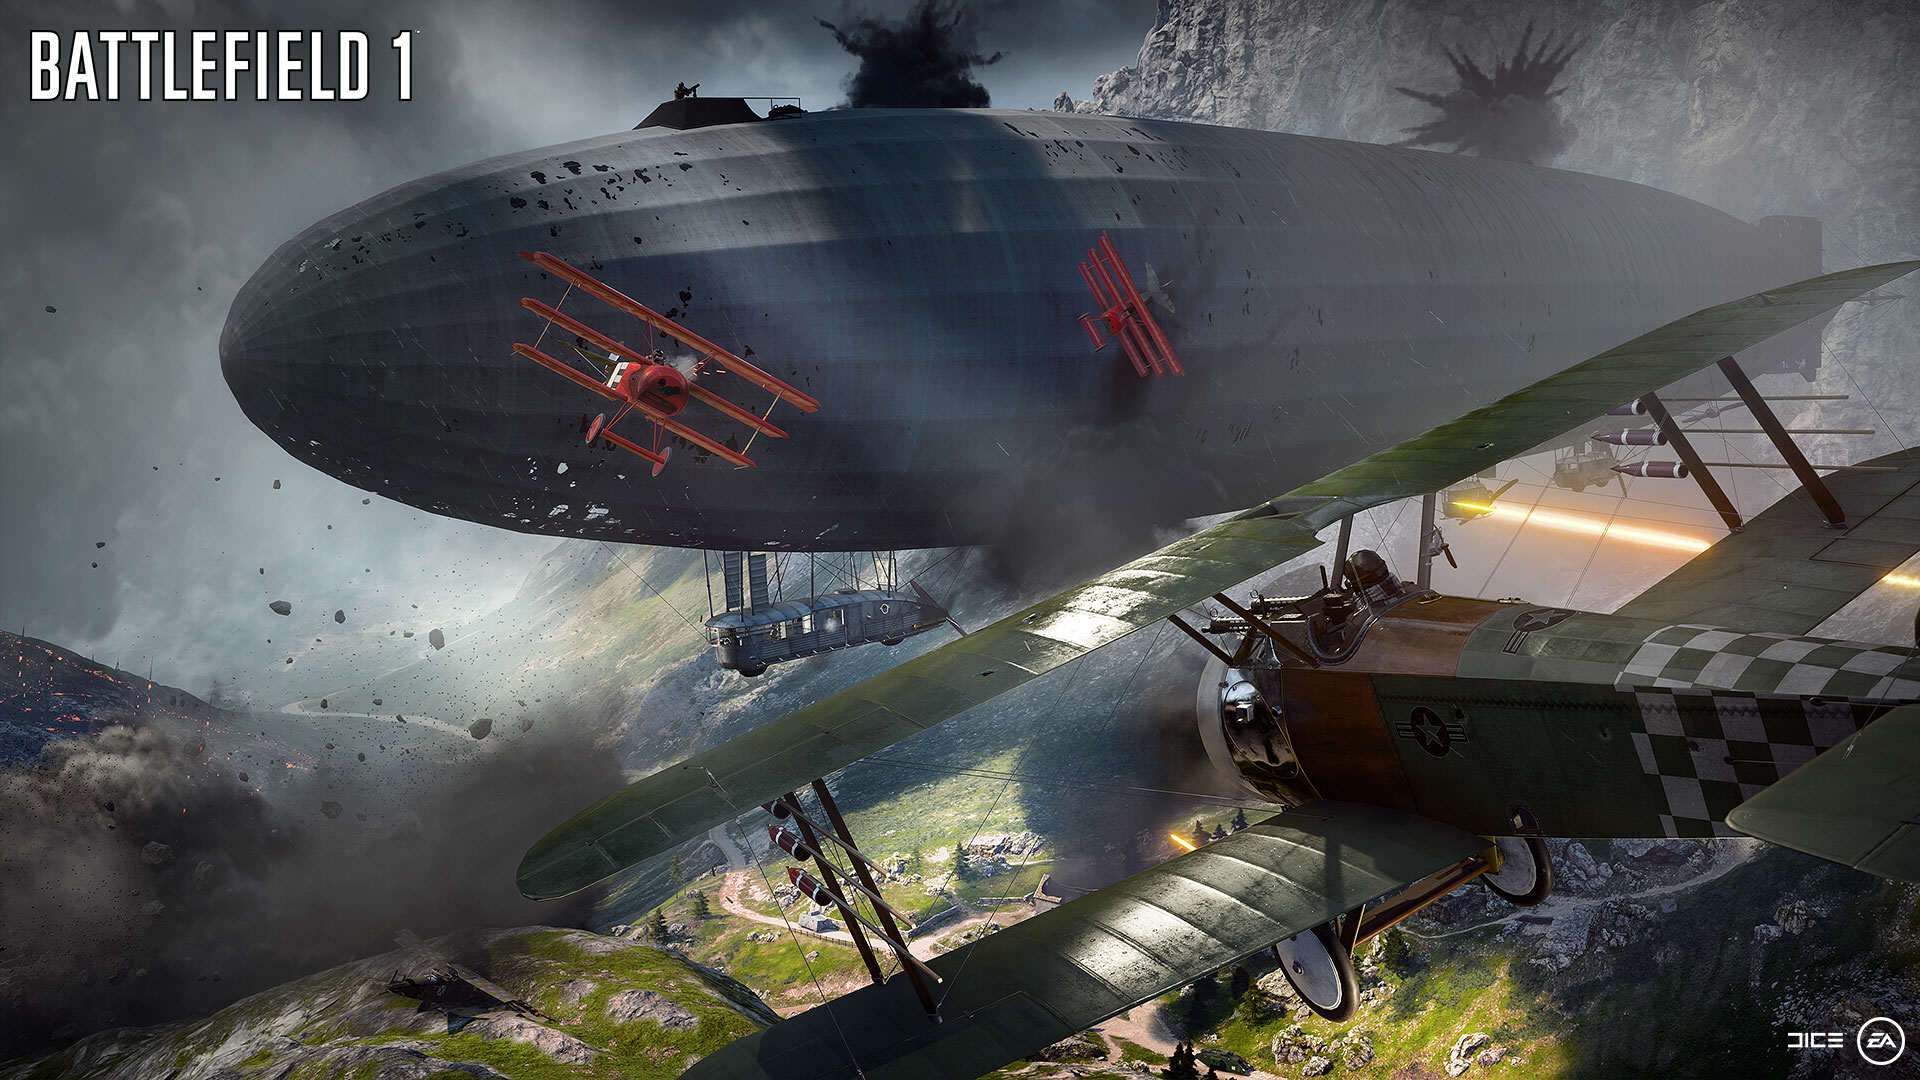 BF1 EA PLAY 01 BEHEMOTH AIRSHIP WM Battlefield 1 Gets Epic New Trailer And Gameplay Features